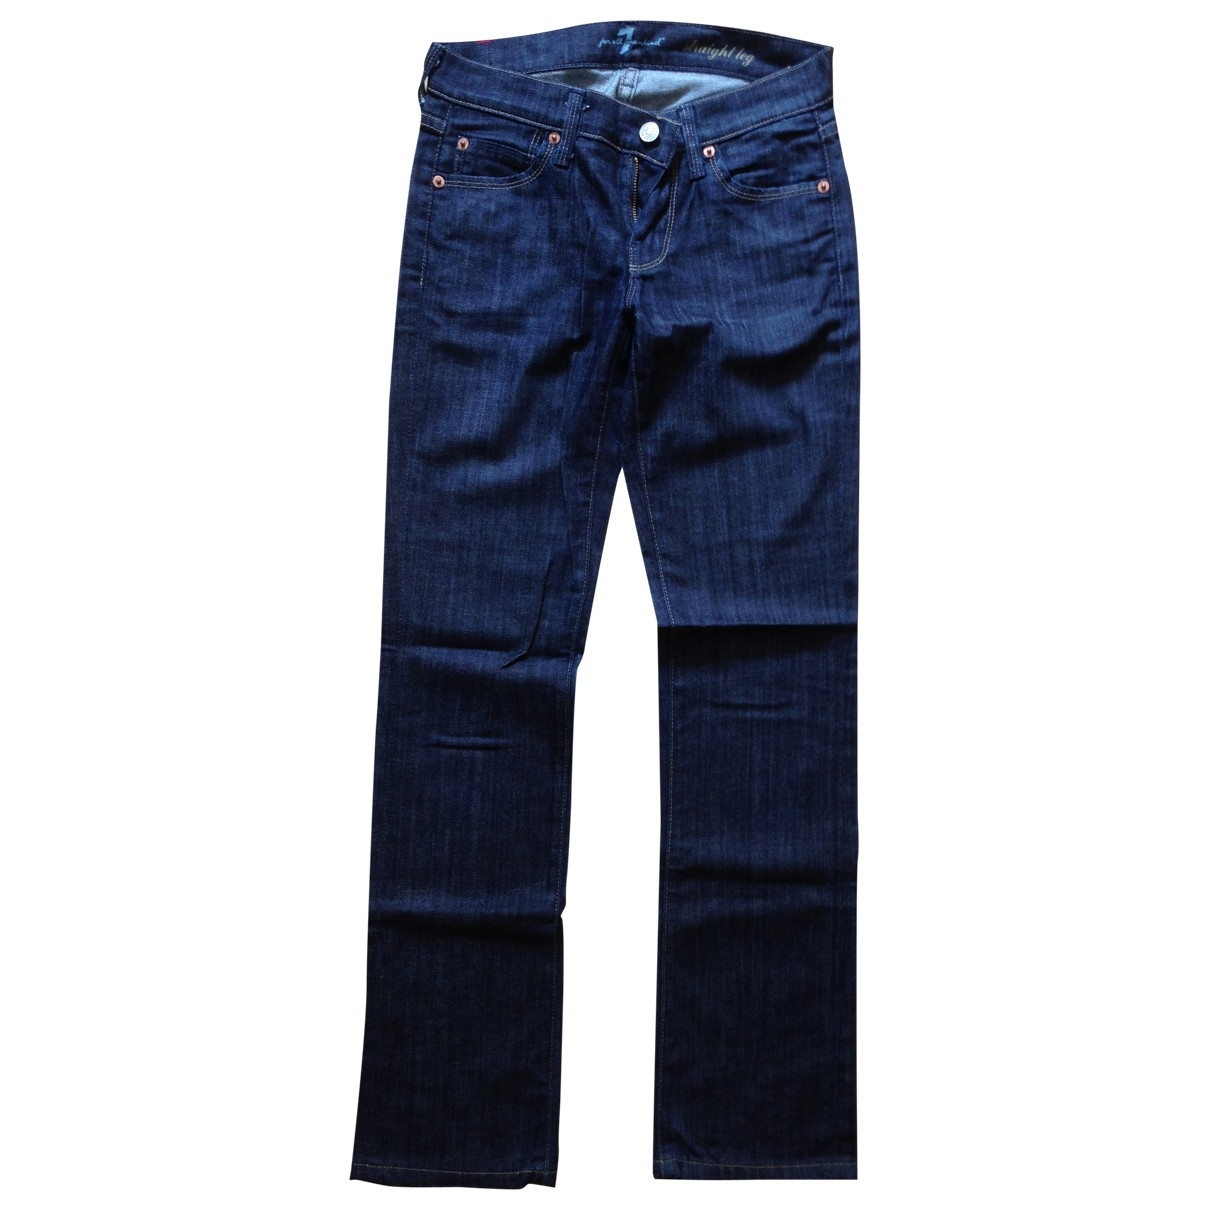 7 For All Mankind \N Blue Cotton Jeans for Women 24 US